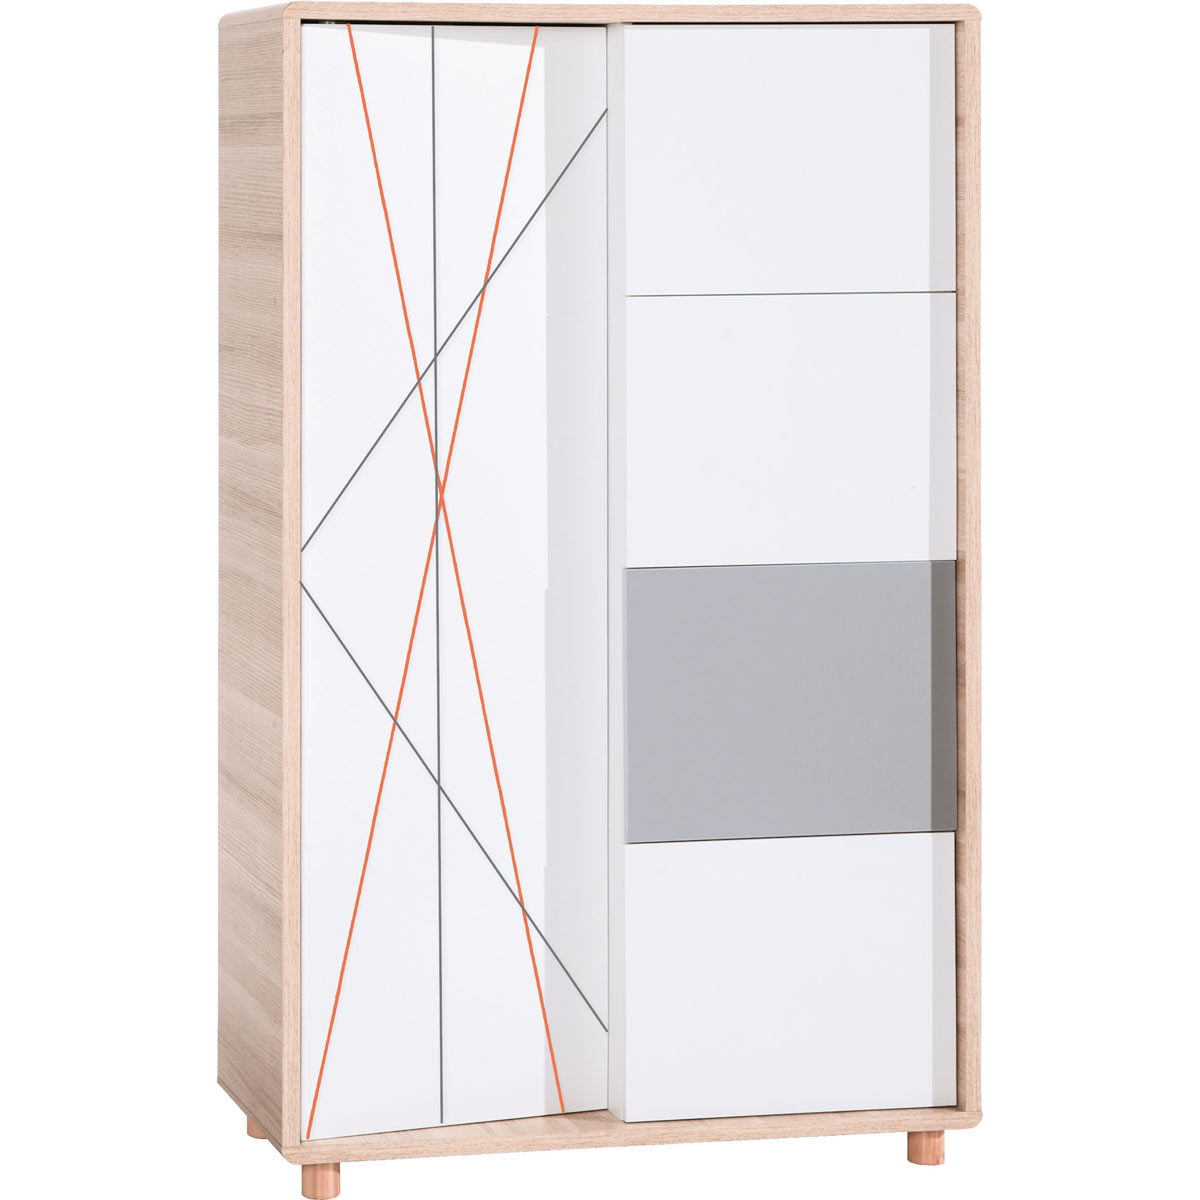 vox evolve kommode hoch oak white grey toppreis. Black Bedroom Furniture Sets. Home Design Ideas